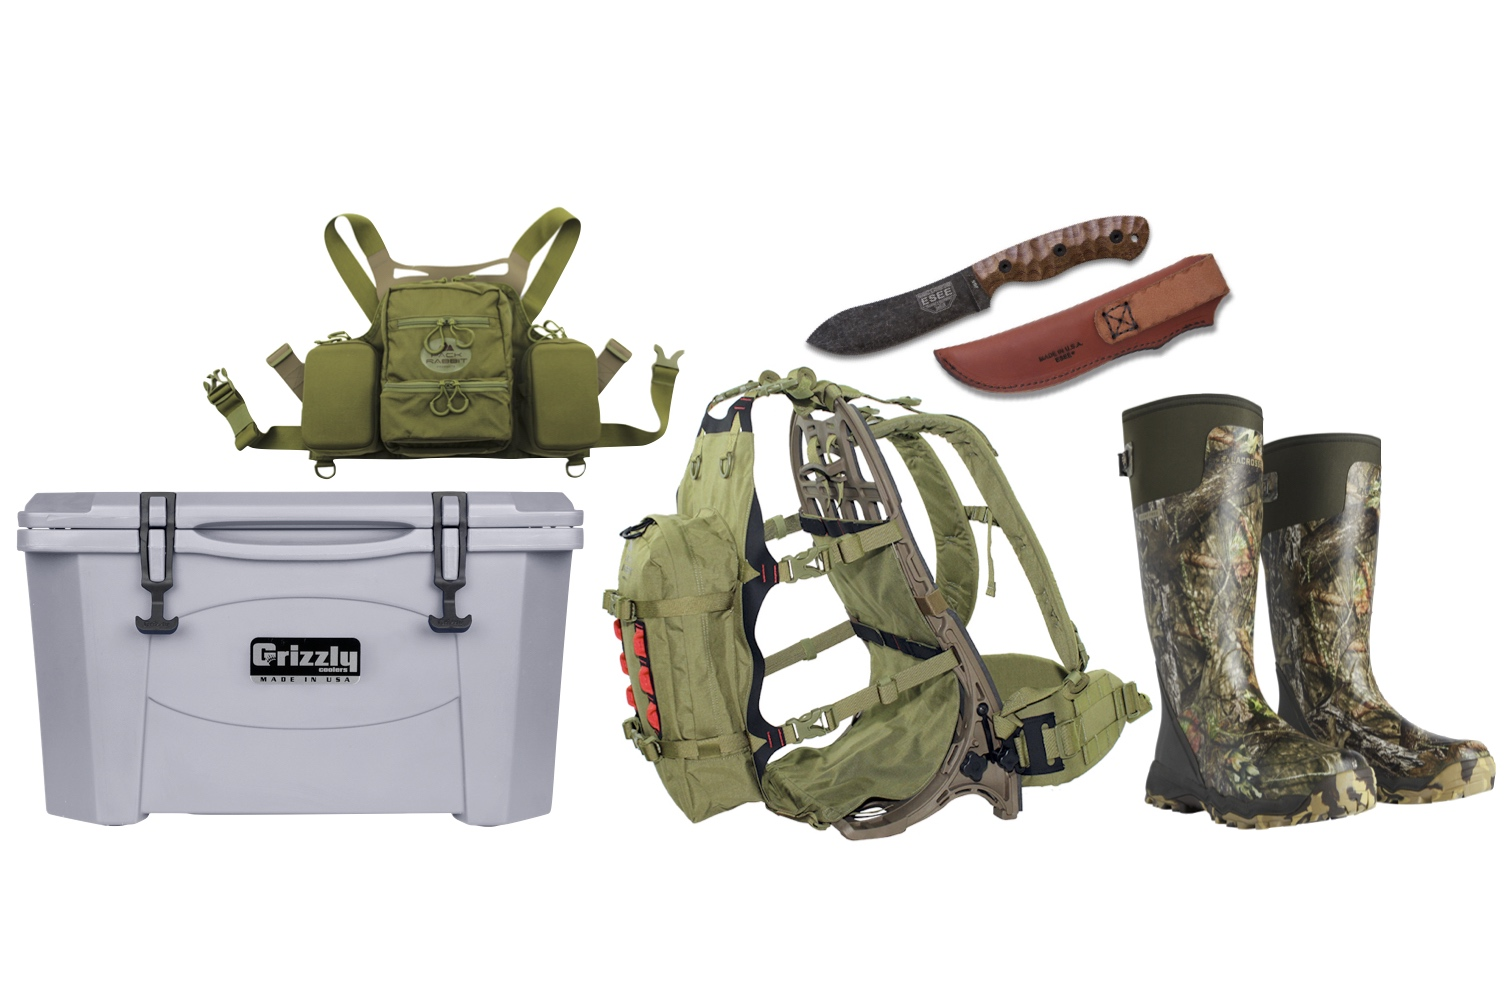 5th Prize - Hunters Gear Package. • Grizzly 40 Quart Cooler.• Pack Rabbit E.T.H. Chest Vest.• Pack Rabbit BCH60 Versatile Pack System.• ESEE JG5 Fixed Blade Knife.• LaCrosse Footwear Gift Certificate for any pair of LaCrosse boots.(Package valued at $1,100)